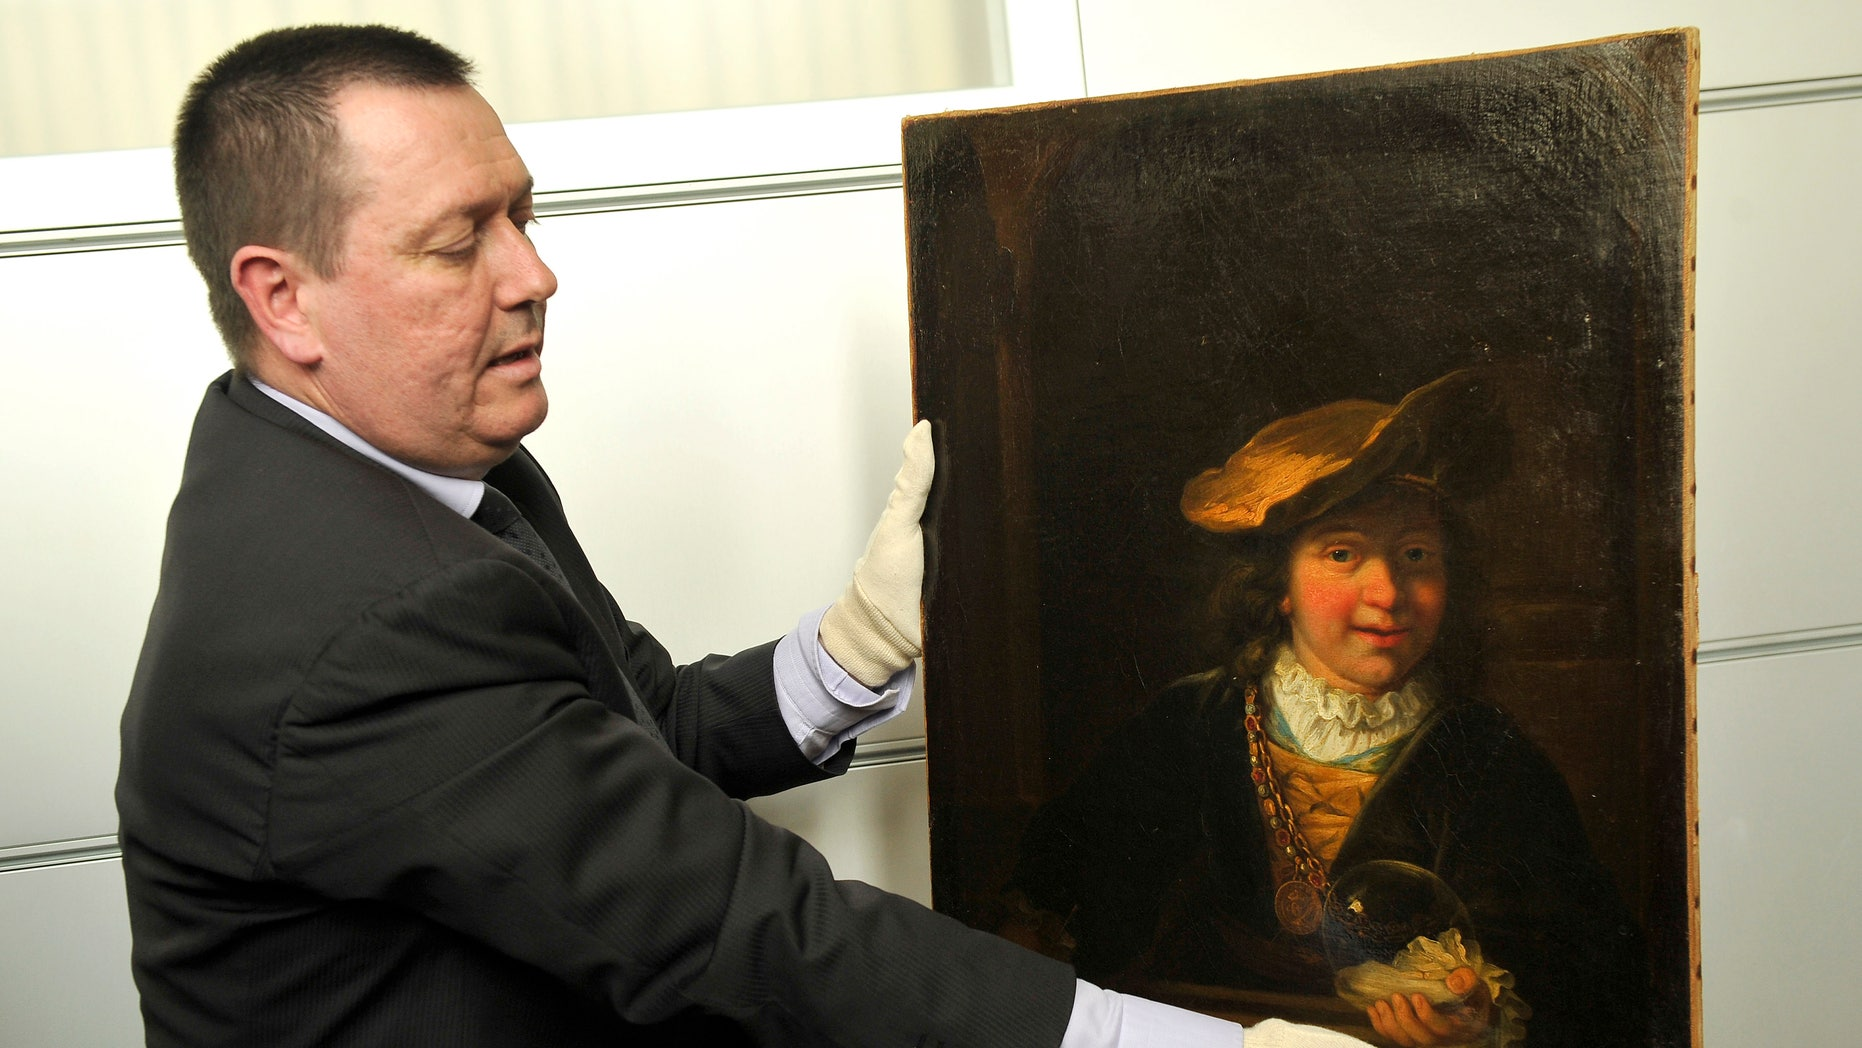 """March 20, 2014 - Policeman Colonel Stephane Gauffeny presents to the press Rembrandt's painting """"Child with a Soap Bubble,"""" stolen in 1999 from the municipal museum of Draguignan, southeastern France. he Rembrandt painting worth millions has been recovered in Nice, and two people found in possession of the Dutch master's painting have been arrested."""